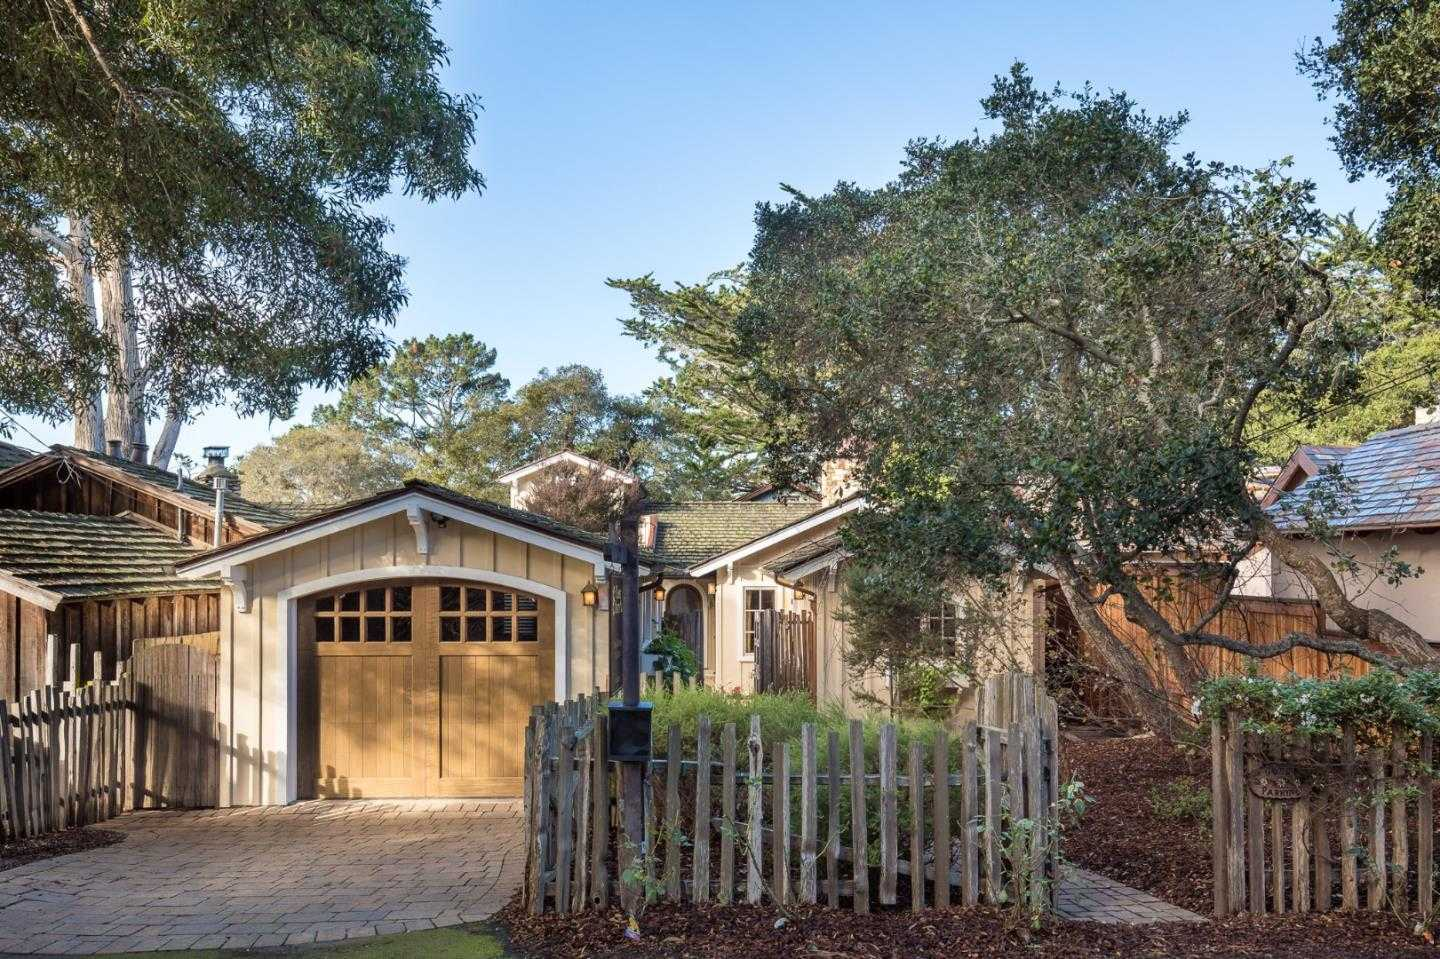 $2,450,000 - 3Br/2Ba -  for Sale in Carmel